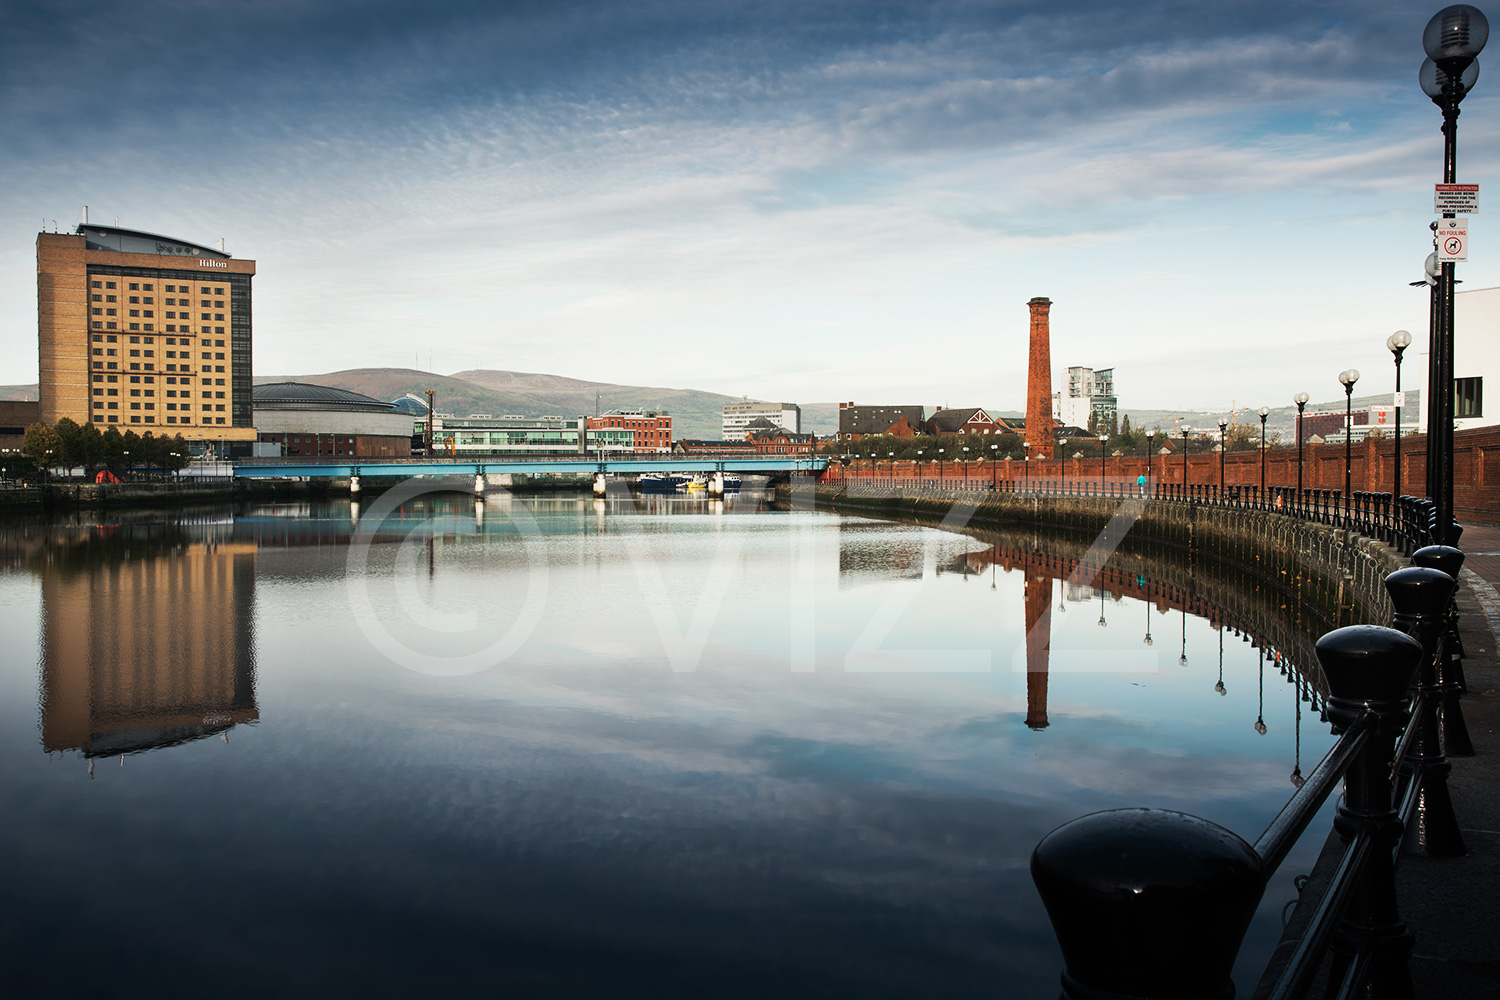 Lagan River, Belfast